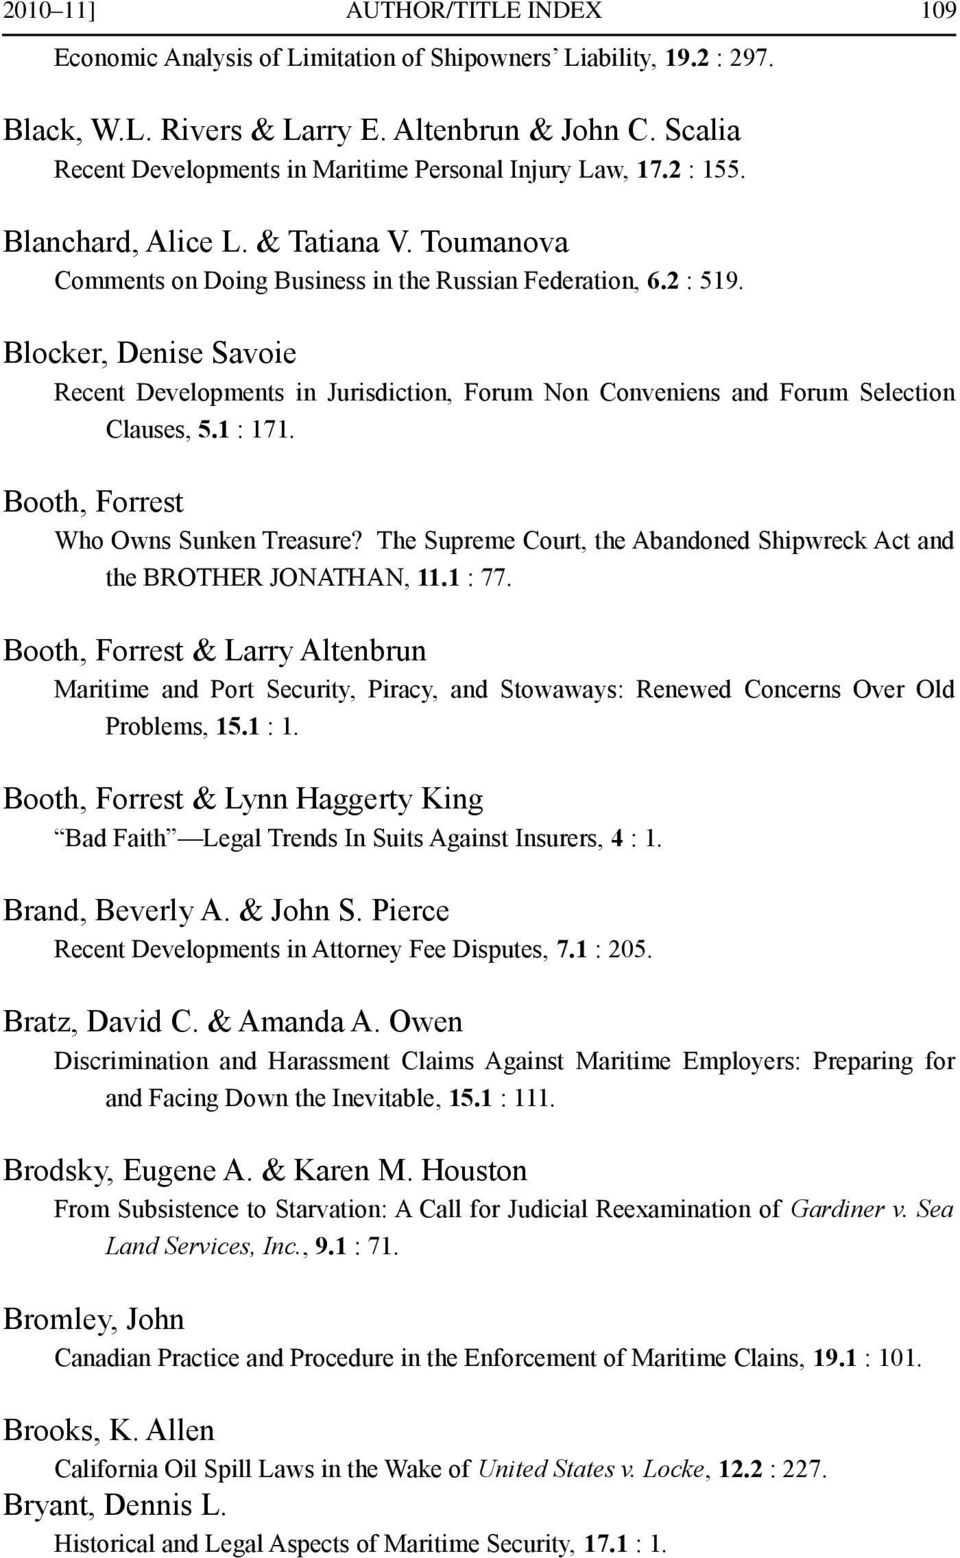 Blocker, Denise Savoie Recent Developments in Jurisdiction, Forum Non Conveniens and Forum Selection Clauses, 5.1 : 171. Booth, Forrest Who Owns Sunken Treasure?